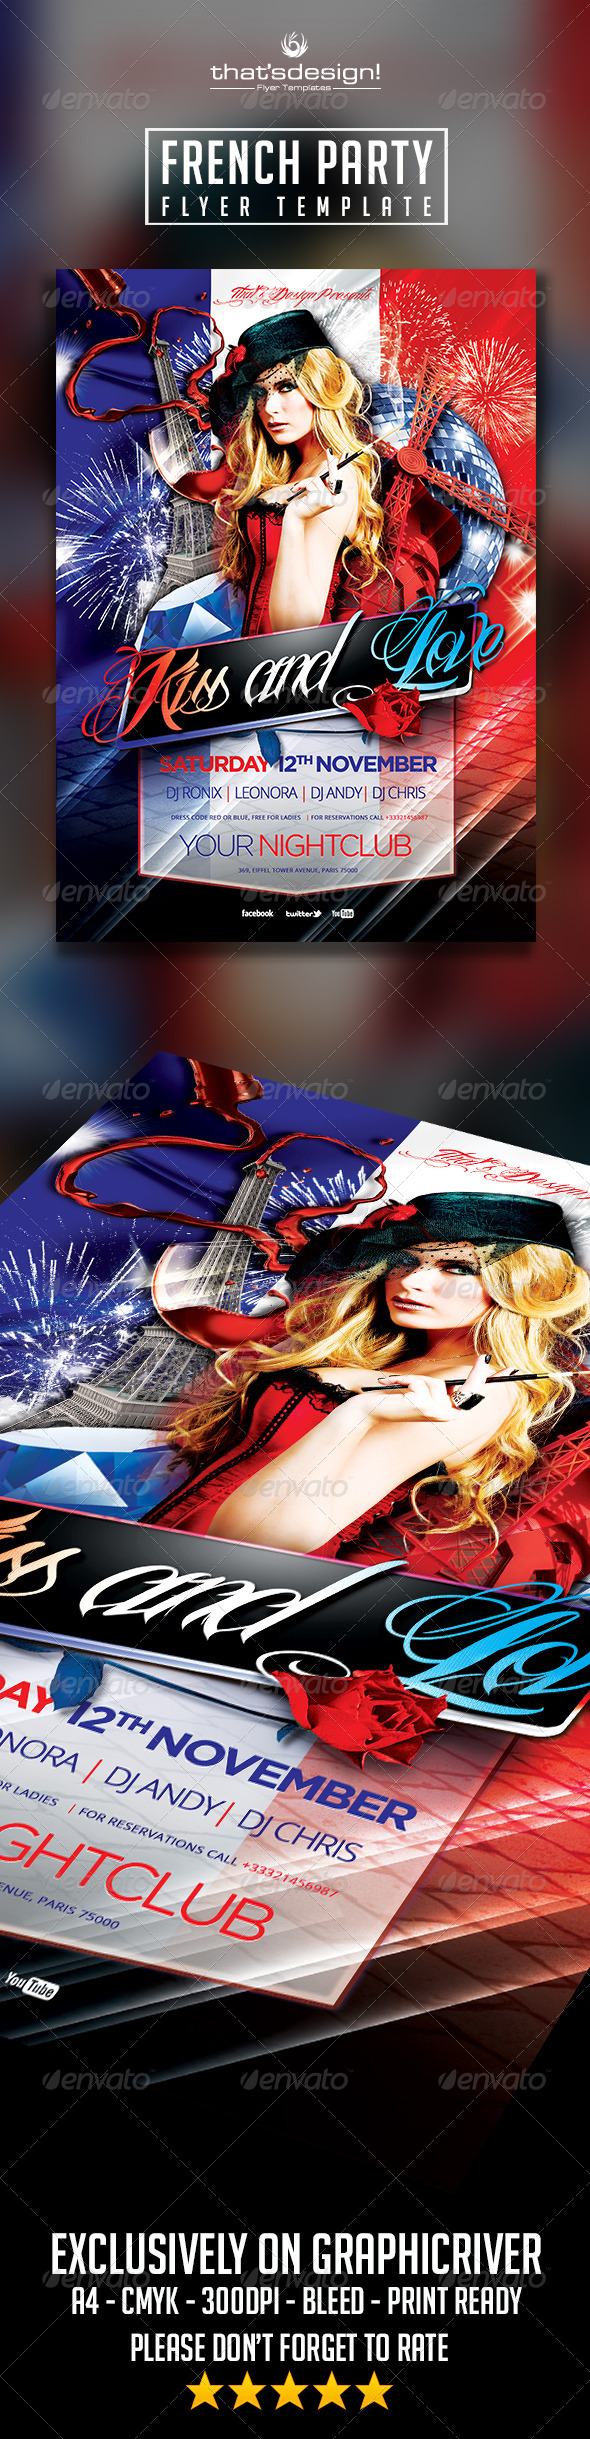 French Party Flyer Template - Clubs & Parties Events